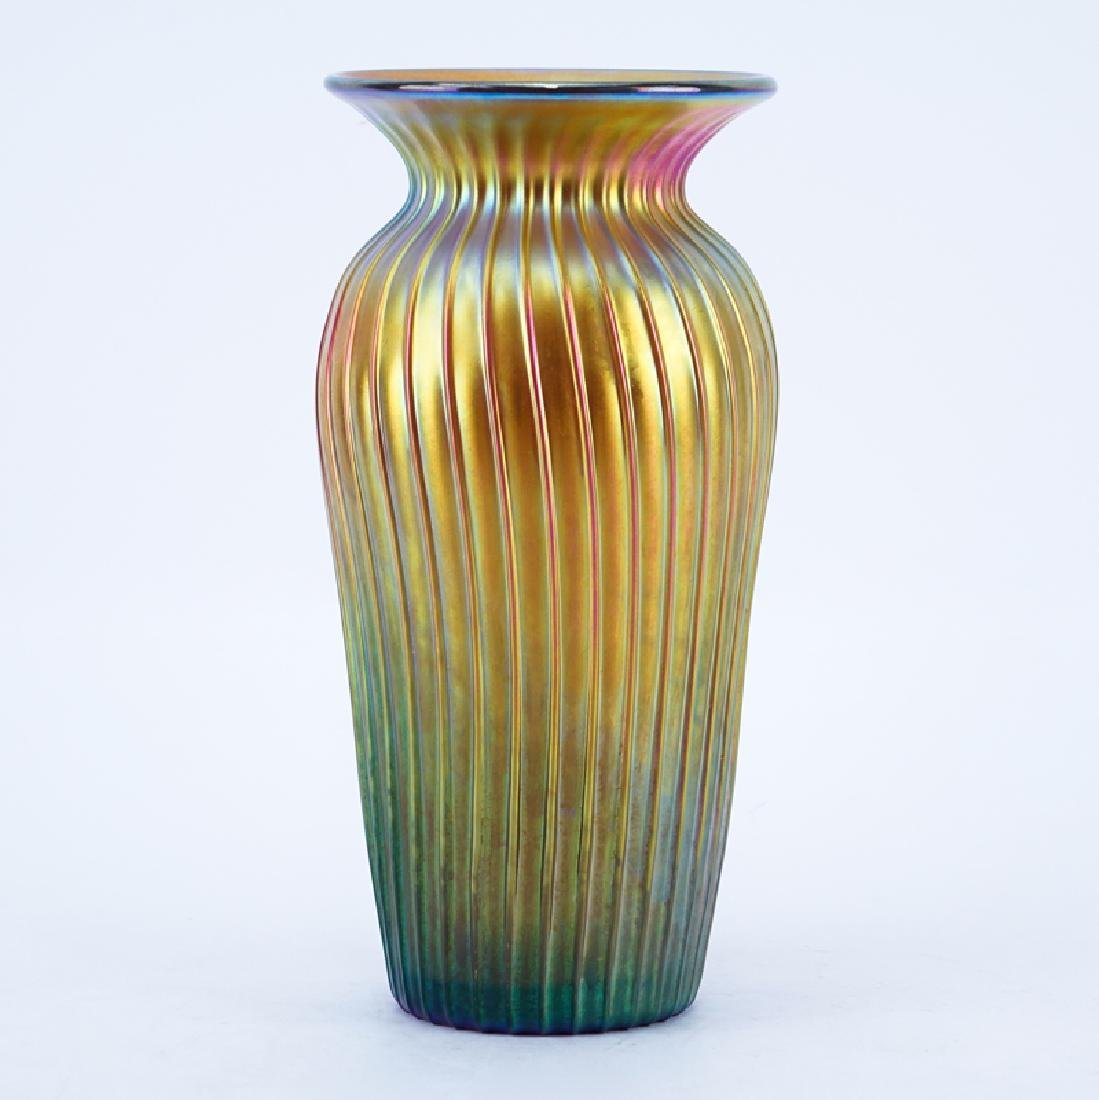 Tiffany Style Gold Favrile Art Glass Vase, 20th